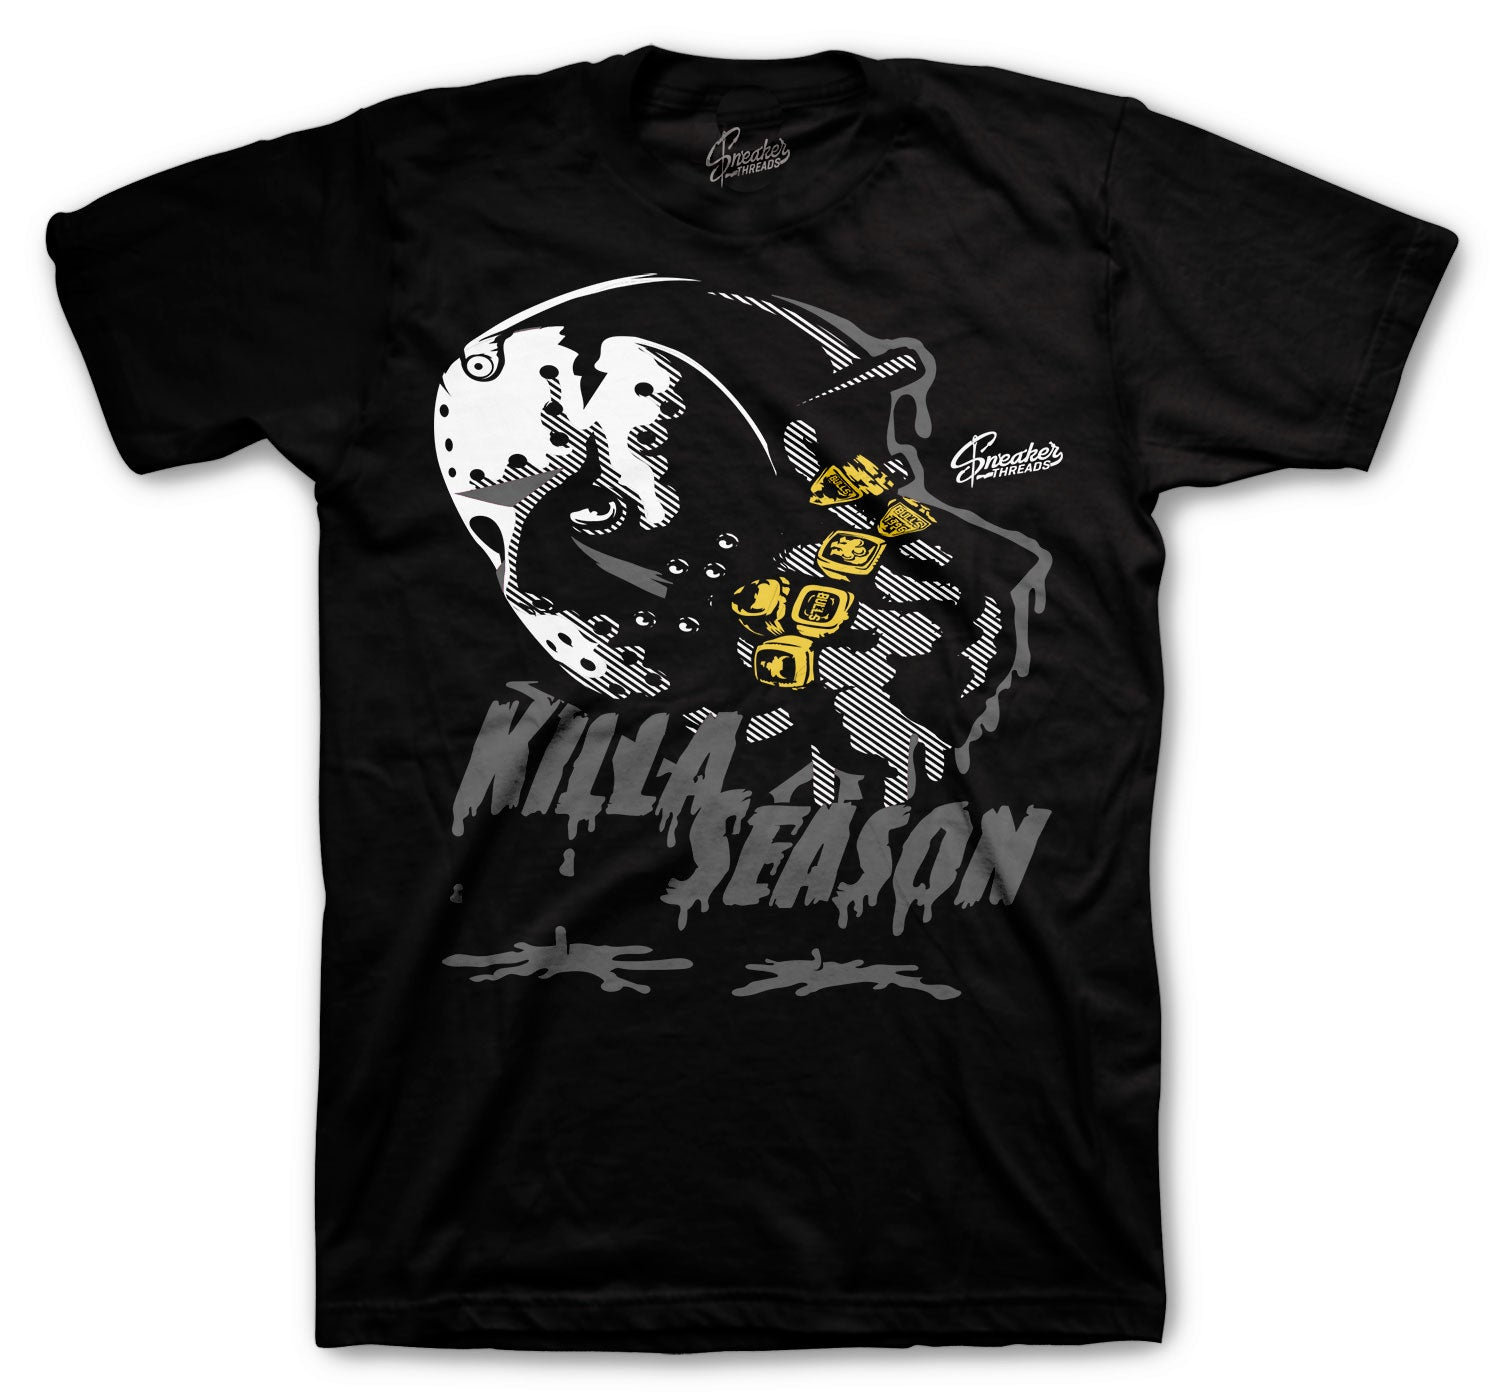 Jordan 4 Black Cat Killa Season Shirt